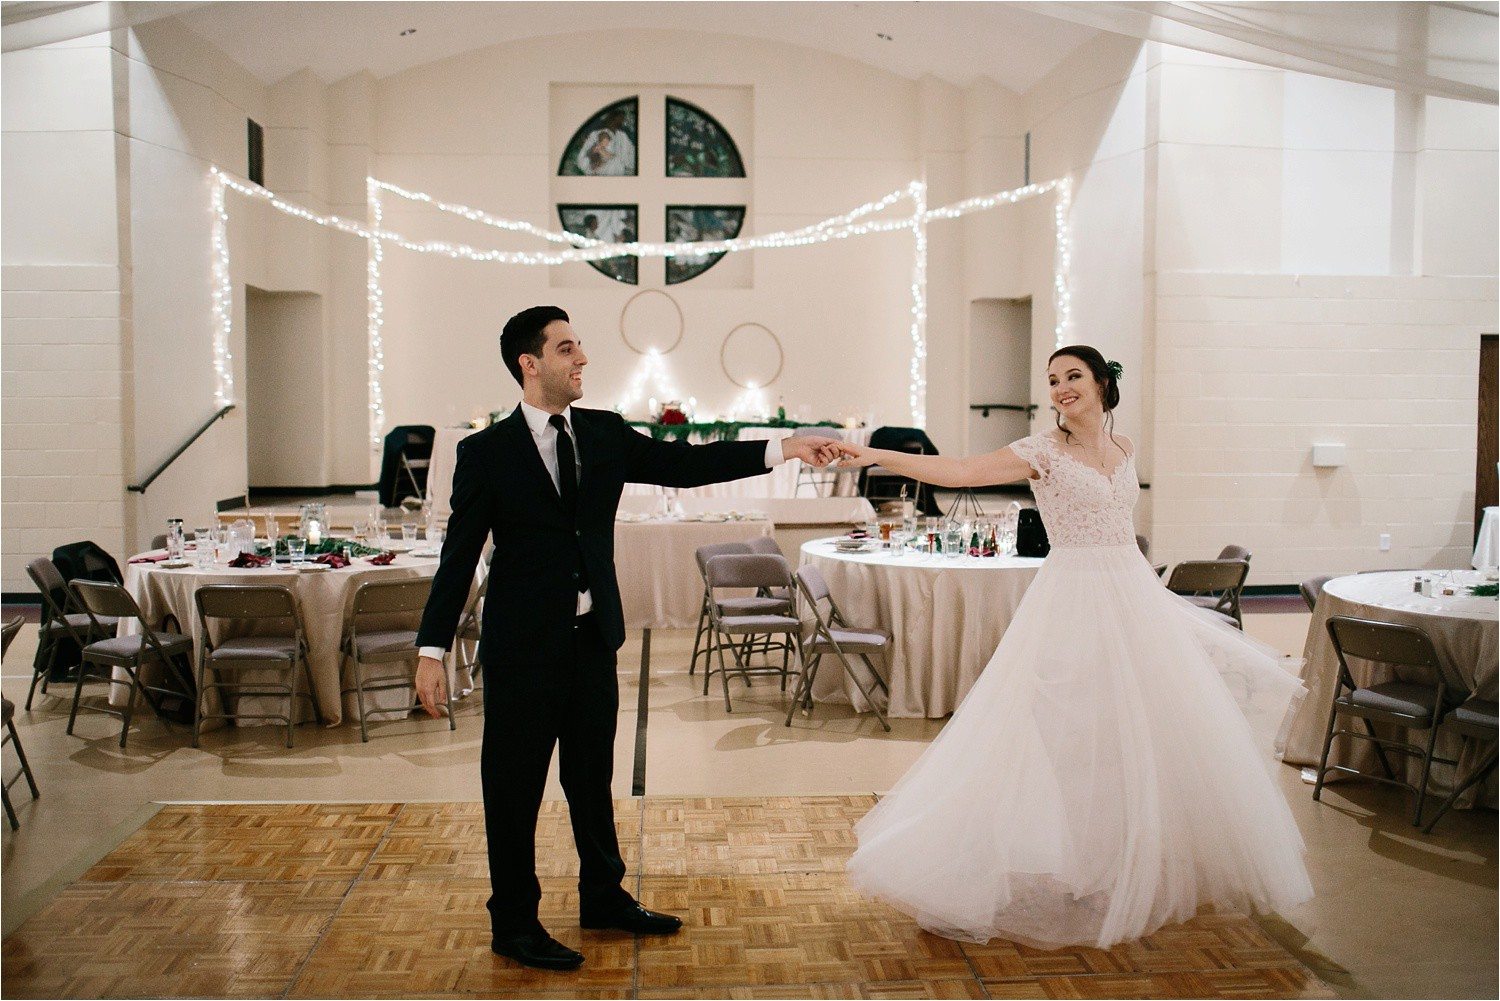 Alaina + Josh __ a wintertime wedding in Houston, TX with Christmas accents and a BHLDN dress by North Texas Wedding Photographer Rachel Meagan Photography _ 93